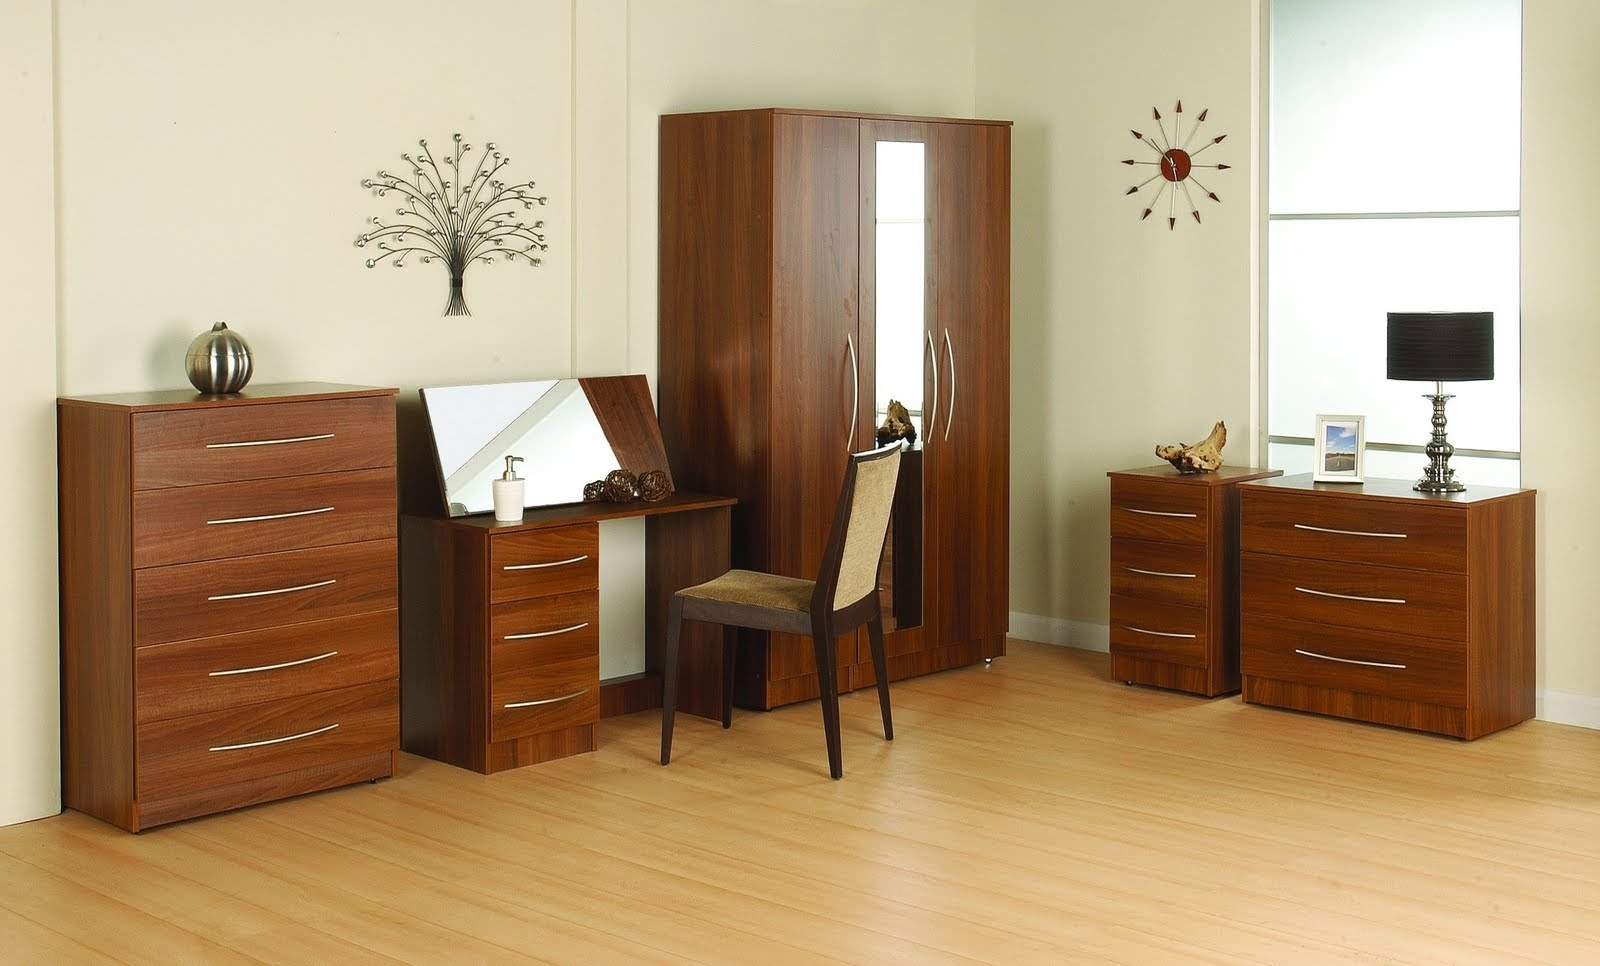 Wooden Bedroom Wardrobe Furniture Ideas (Image 15 of 15)